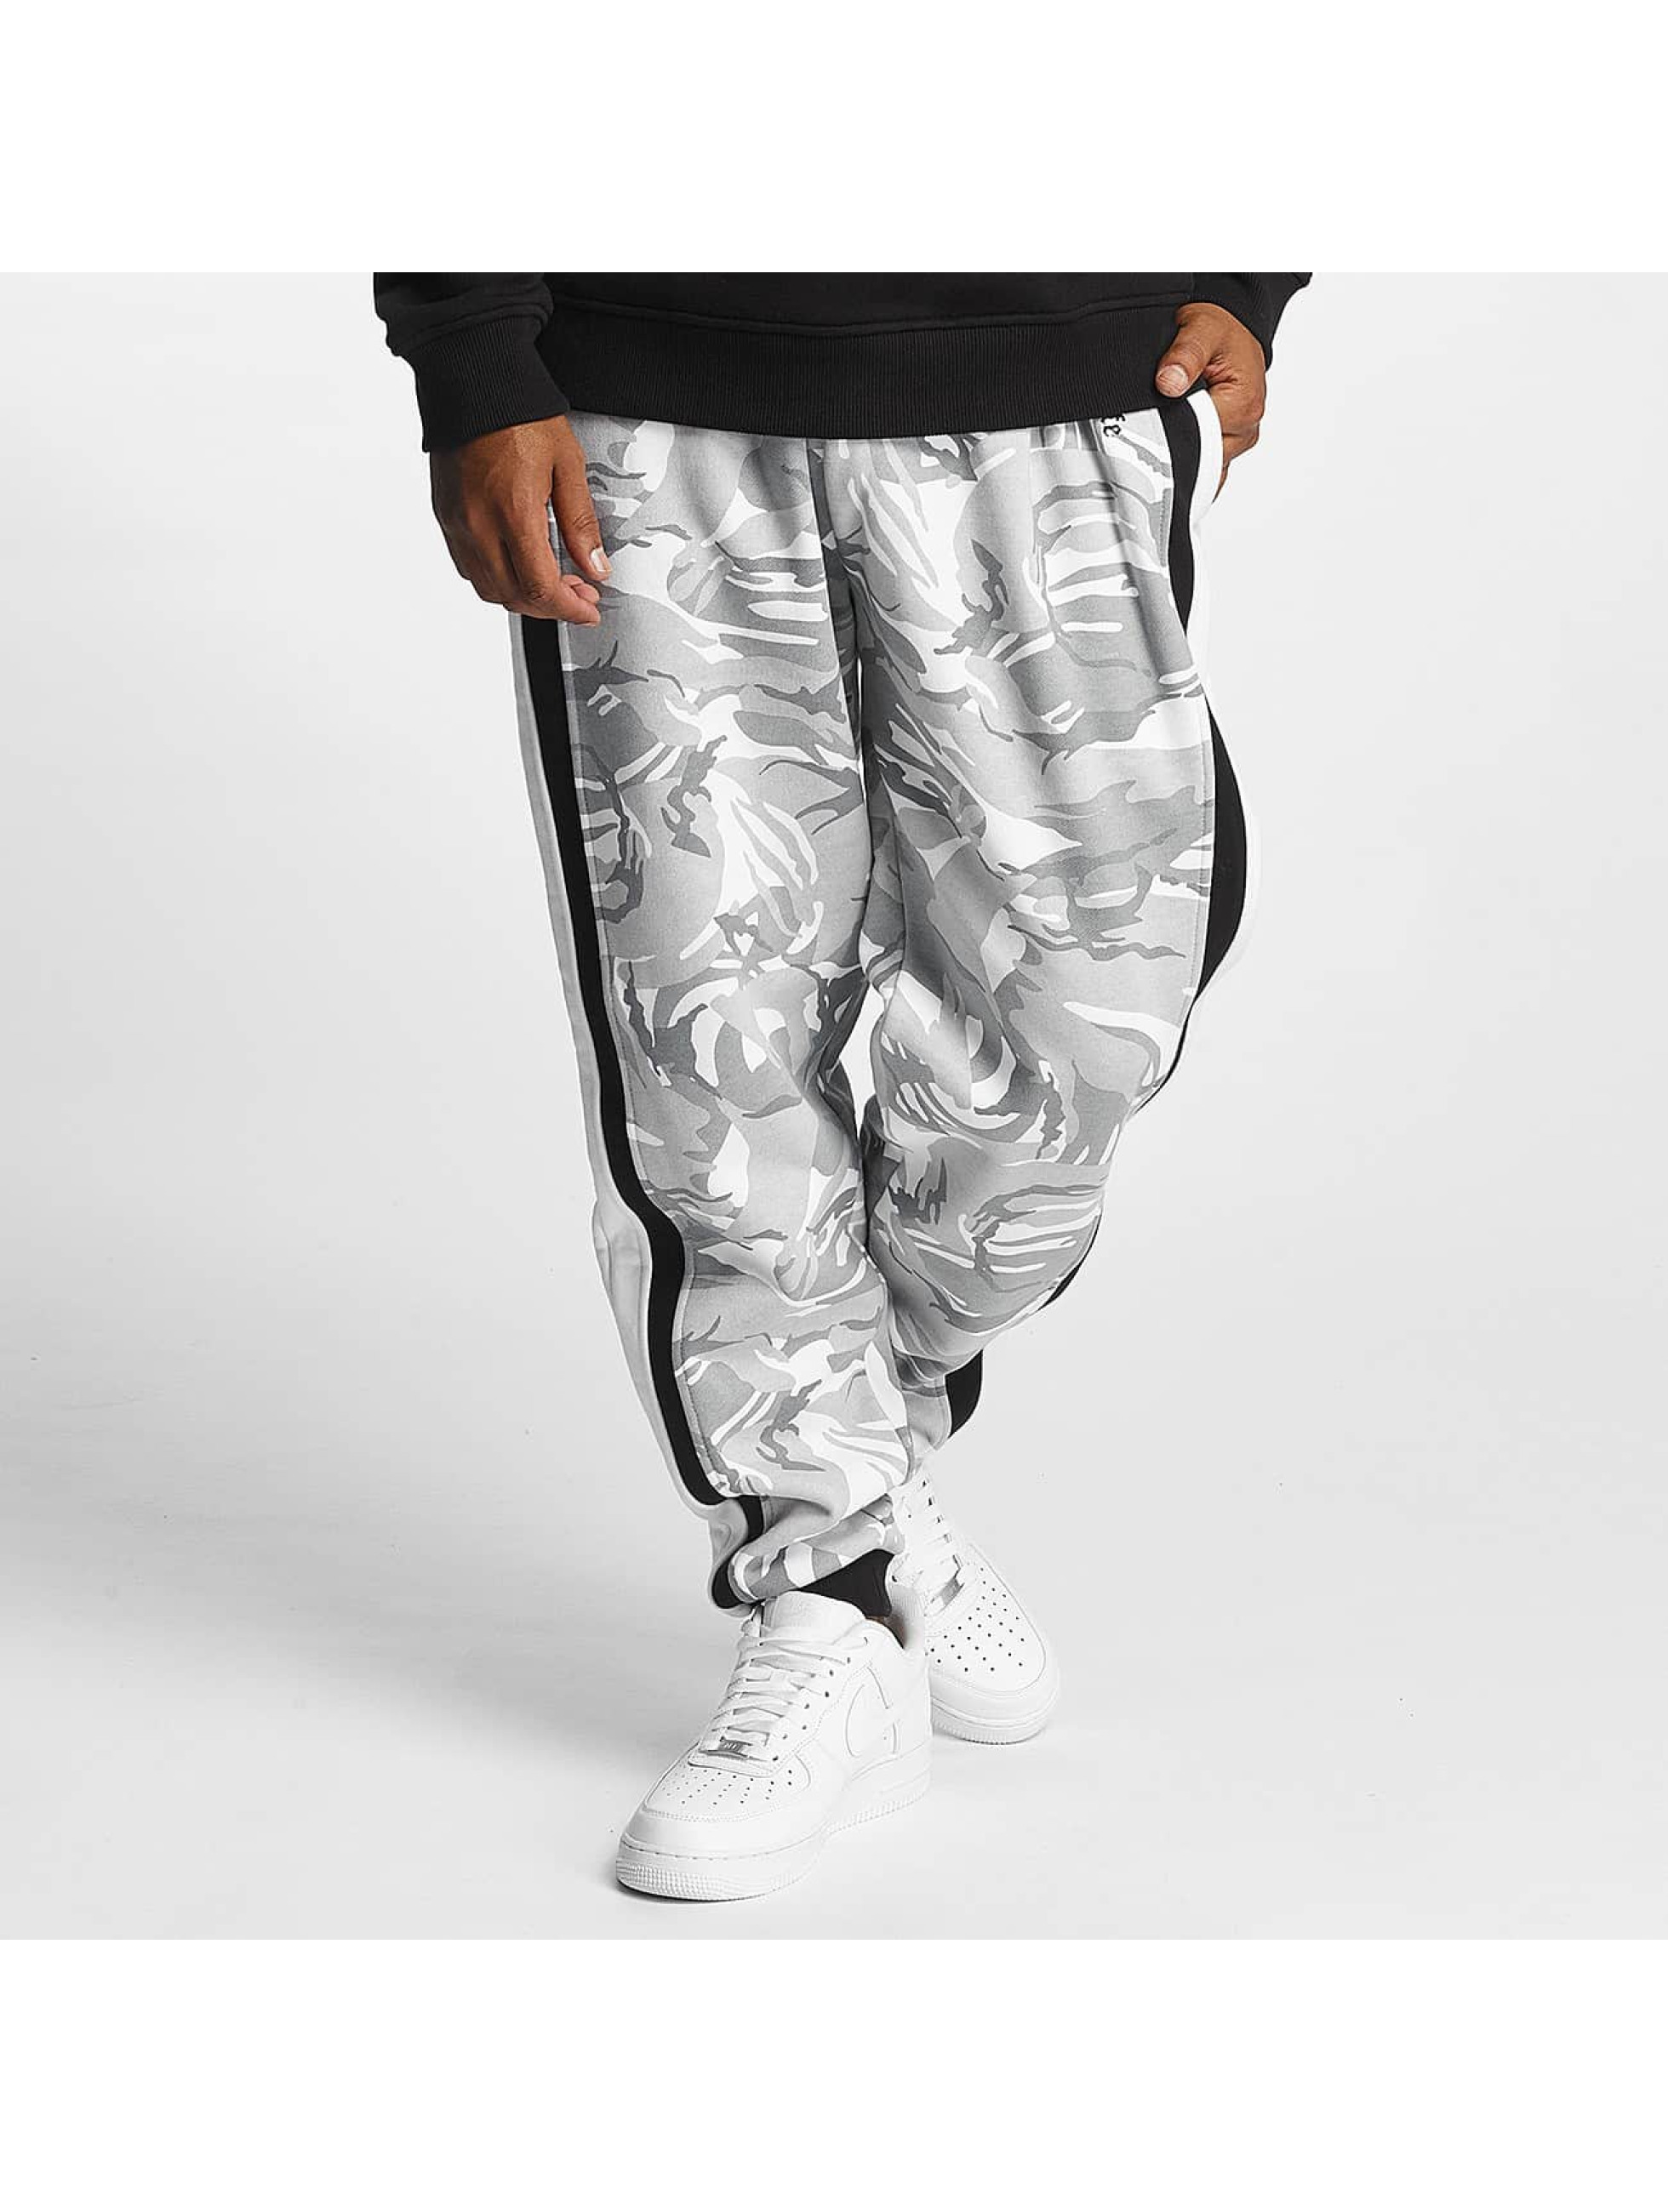 Thug Life / Sweat Pant Lecter in white XL